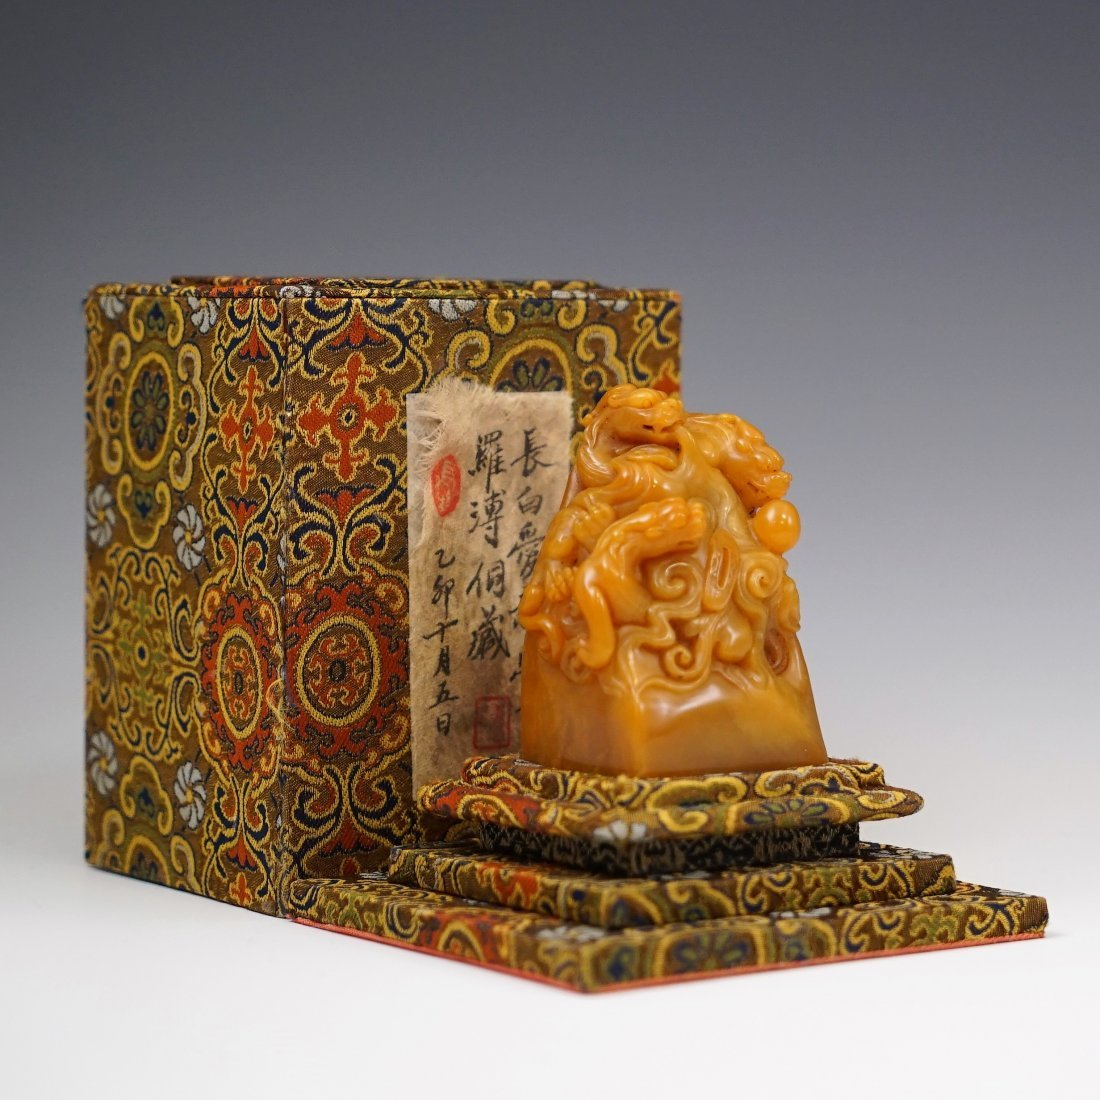 19TH C VERY FINE PIXUE CARVED TIANHUANG SEAL IN BOX